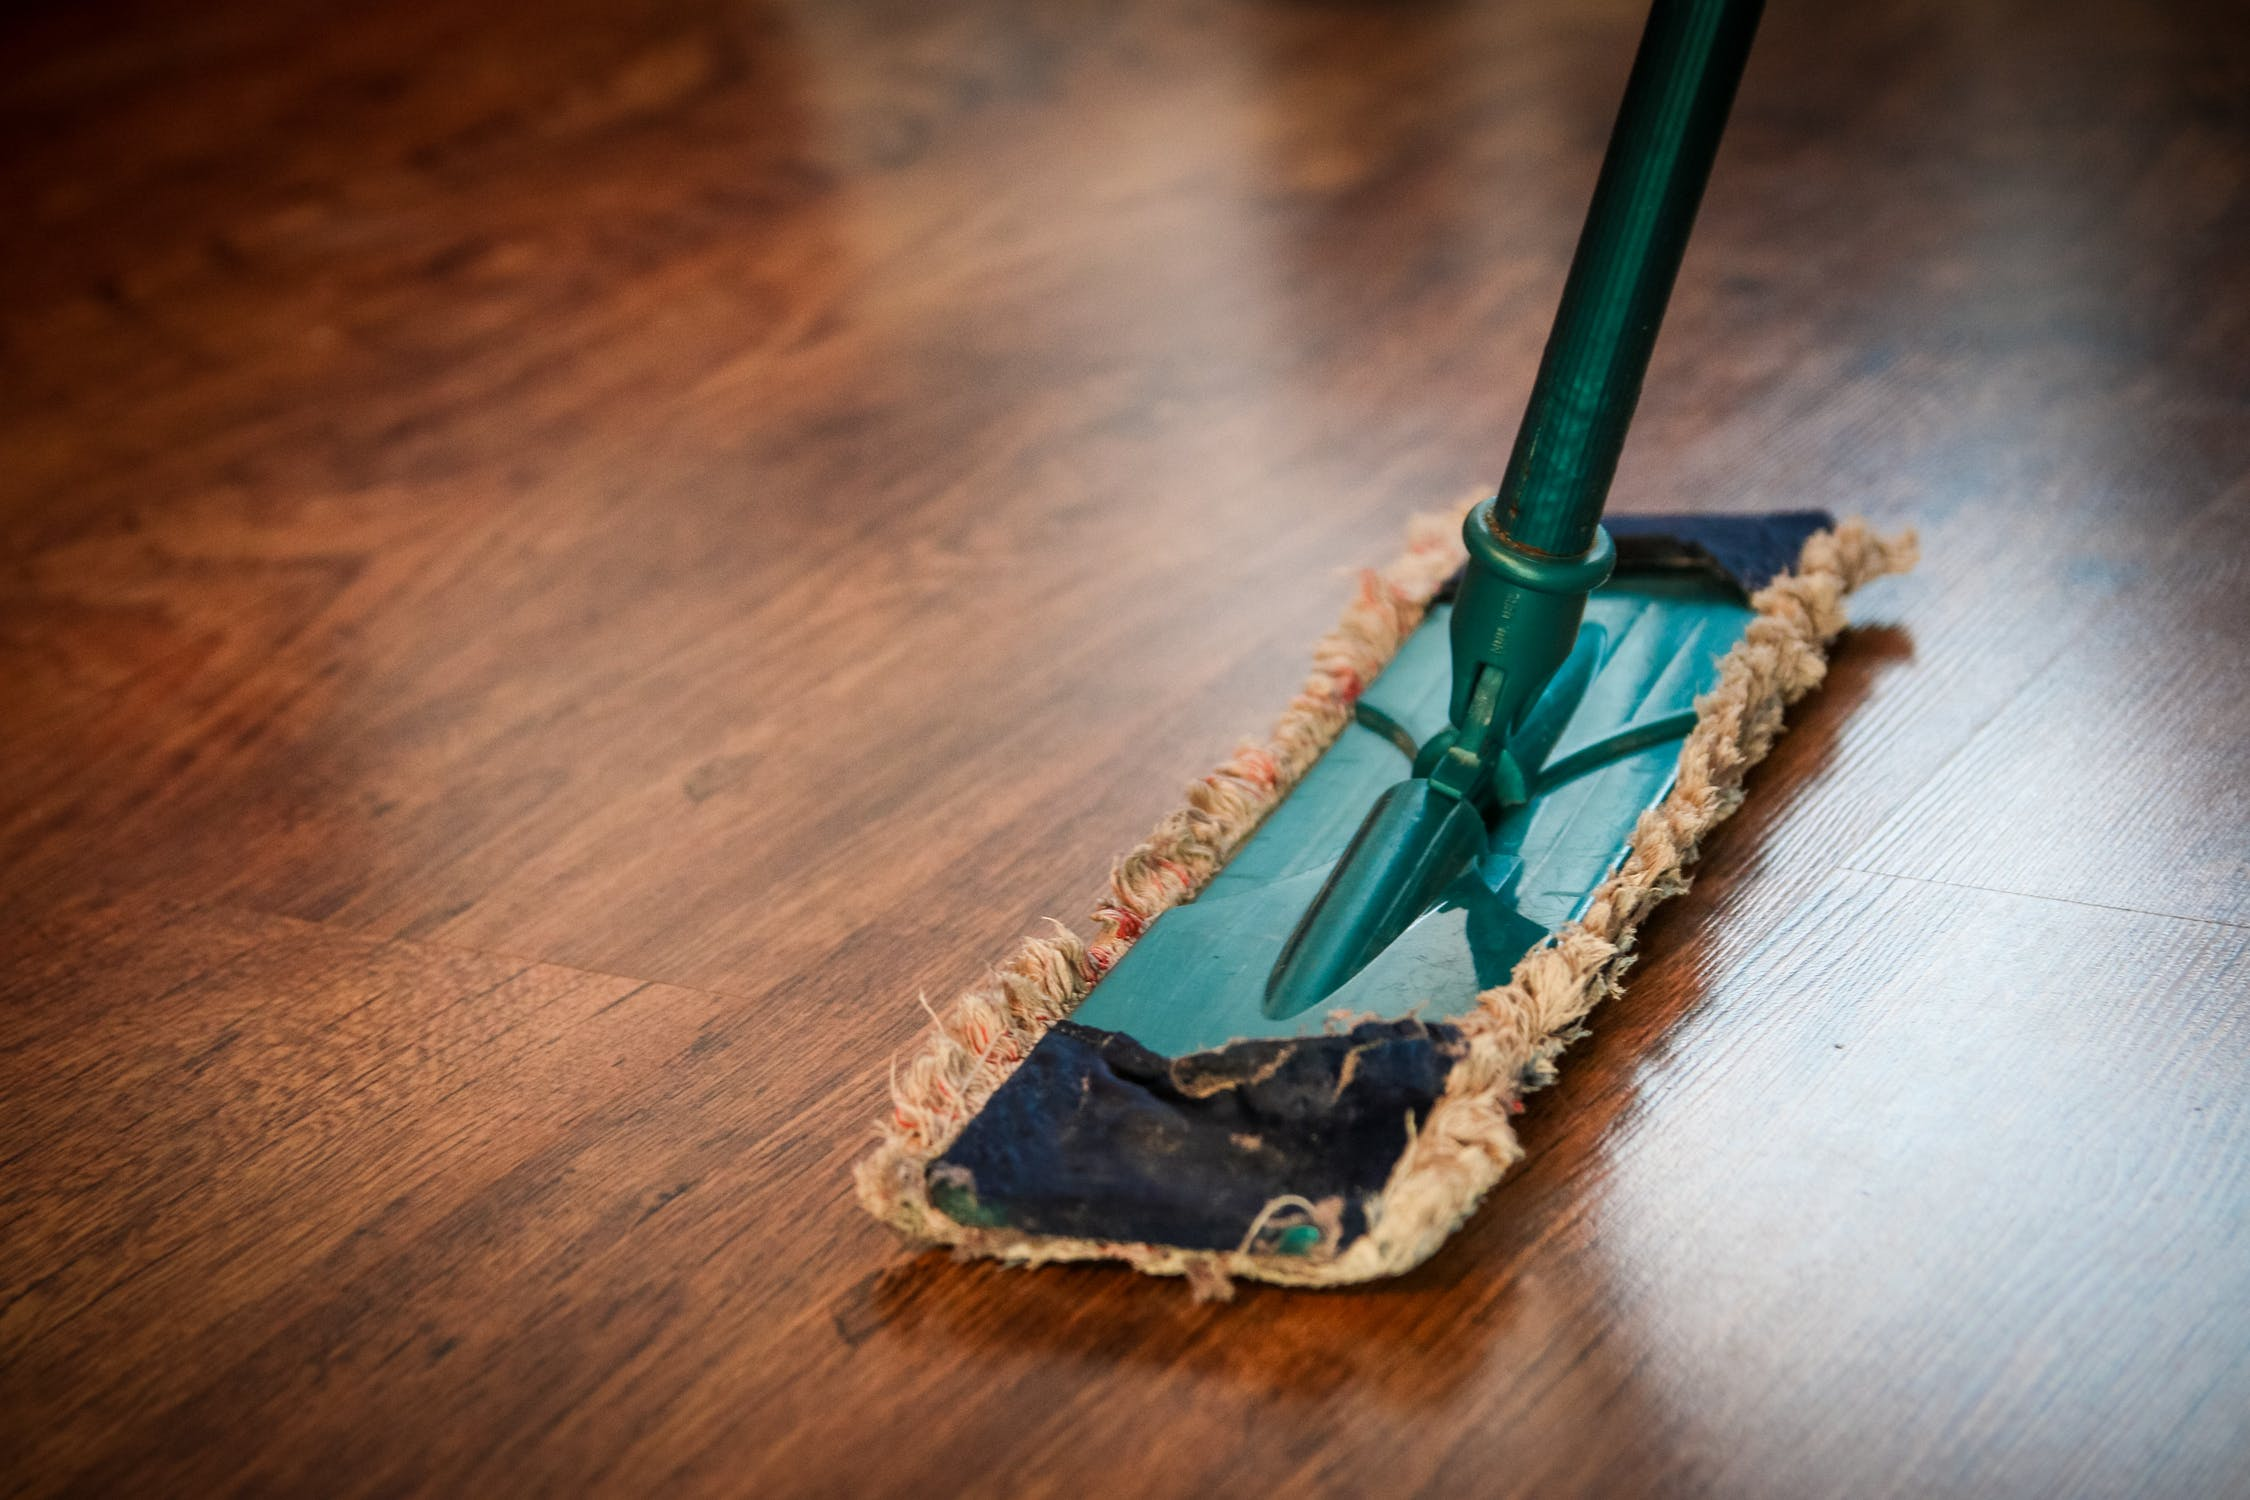 A swiffer mopping a wooden floor